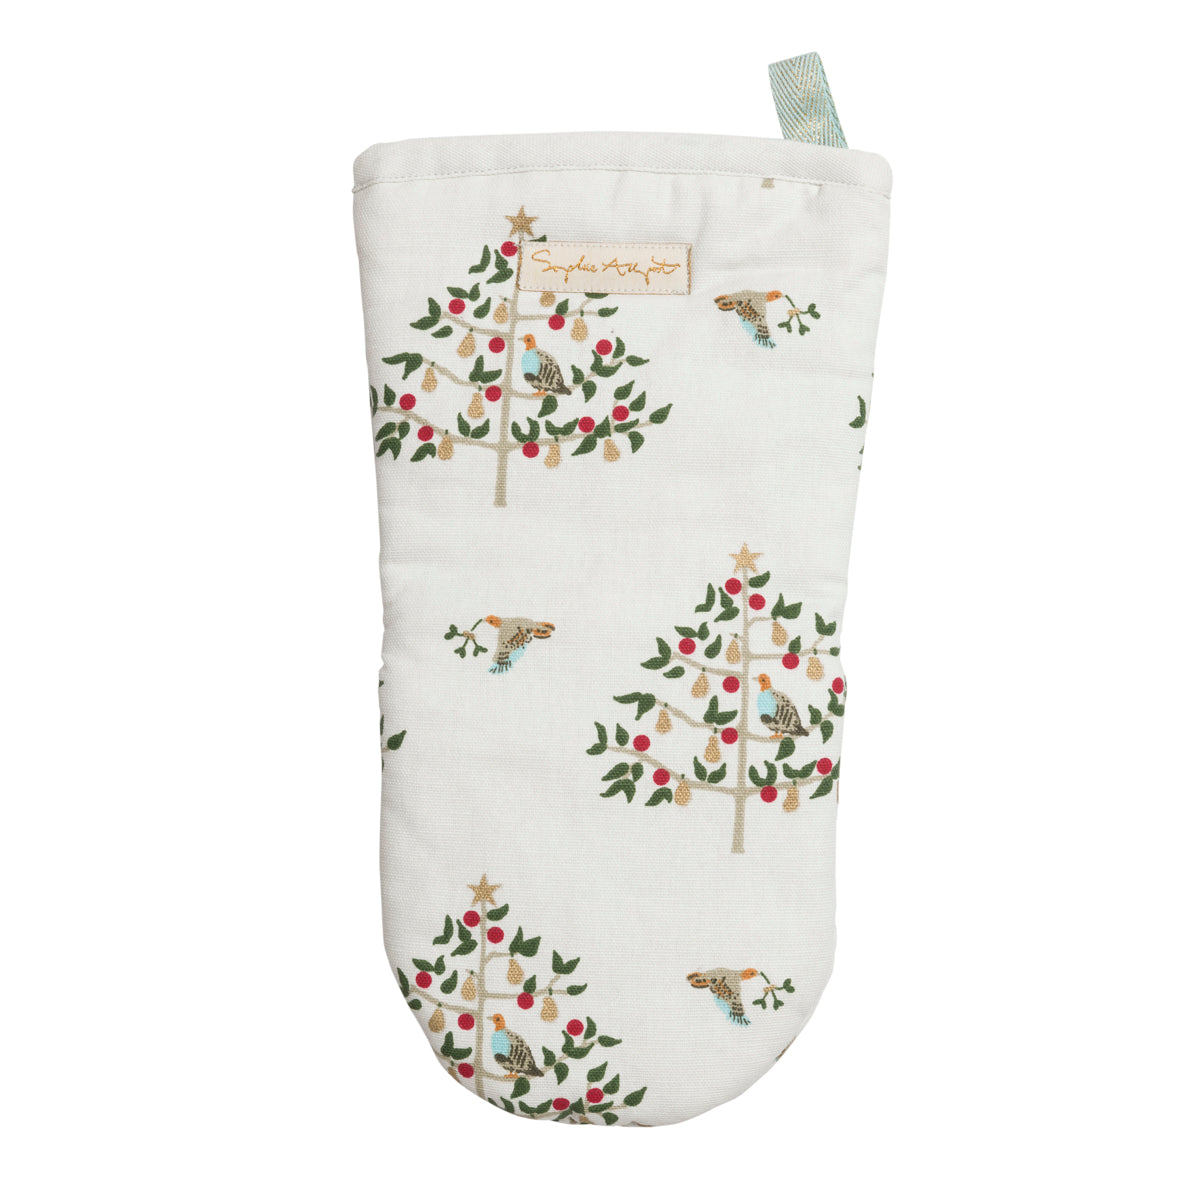 Partridge Oven Mitt by Sophie Allport